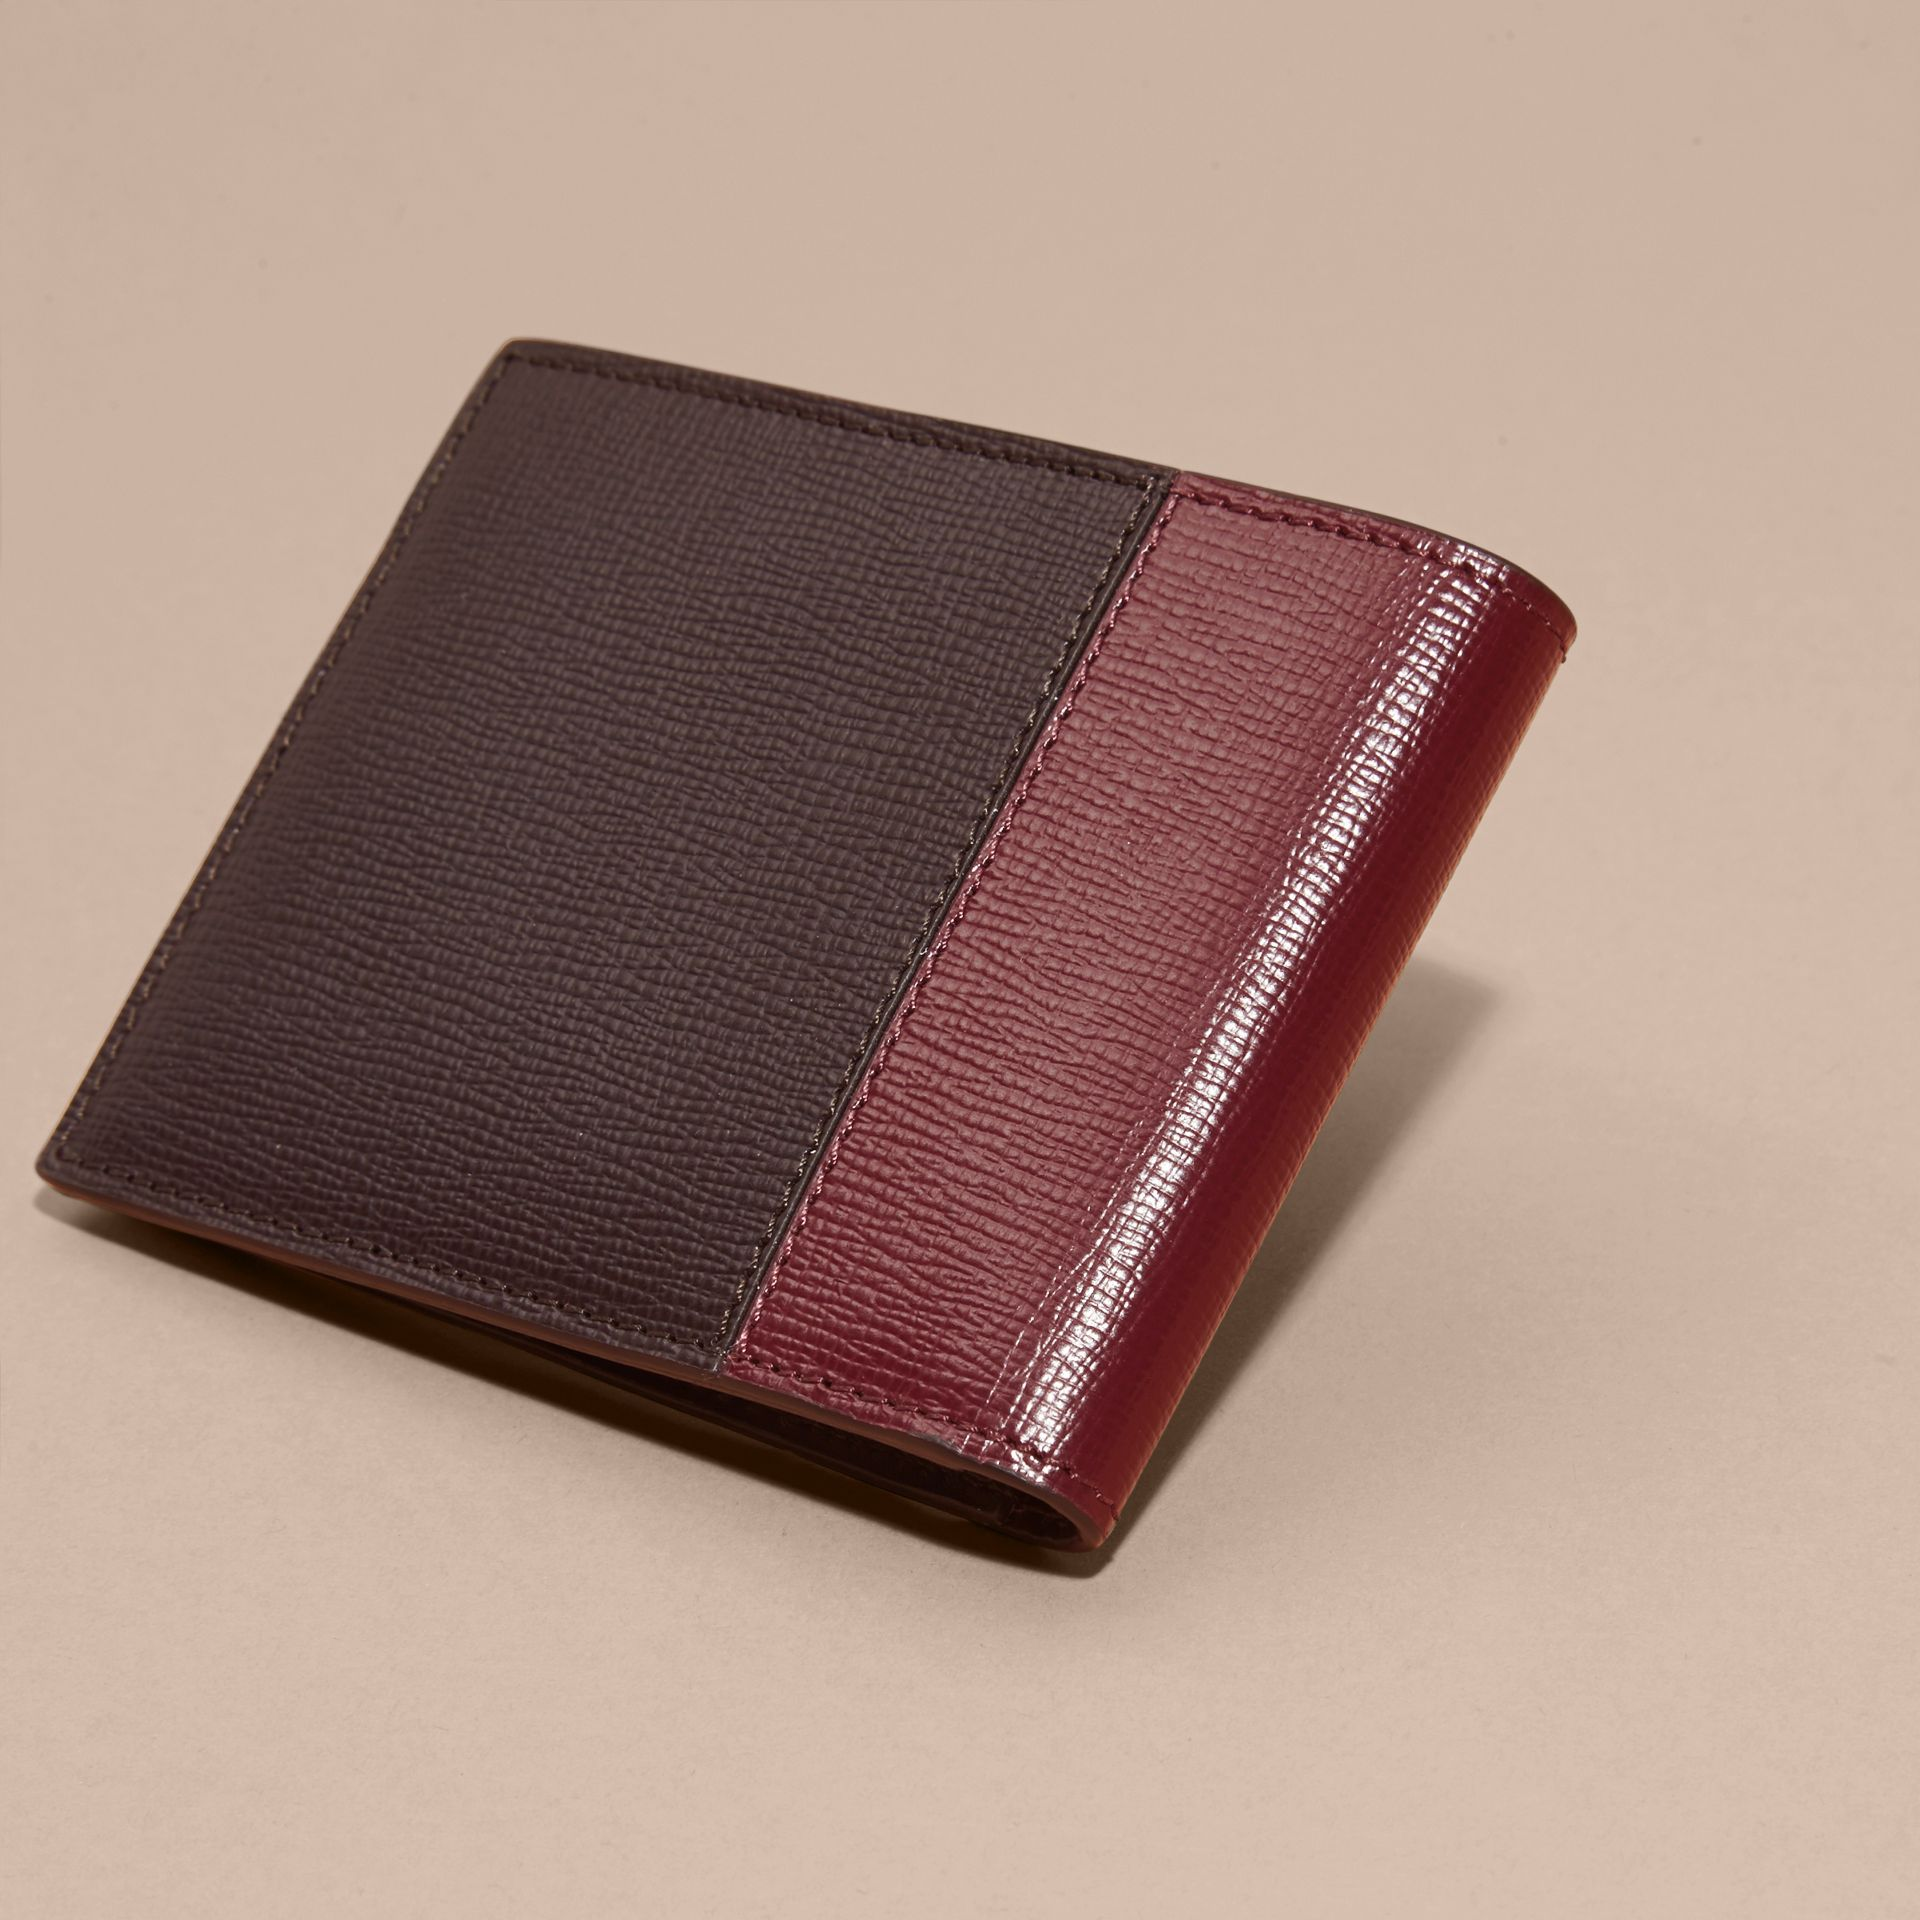 Wine/burgundy red Panelled London Leather Folding Wallet Wine/burgundy Red - gallery image 4